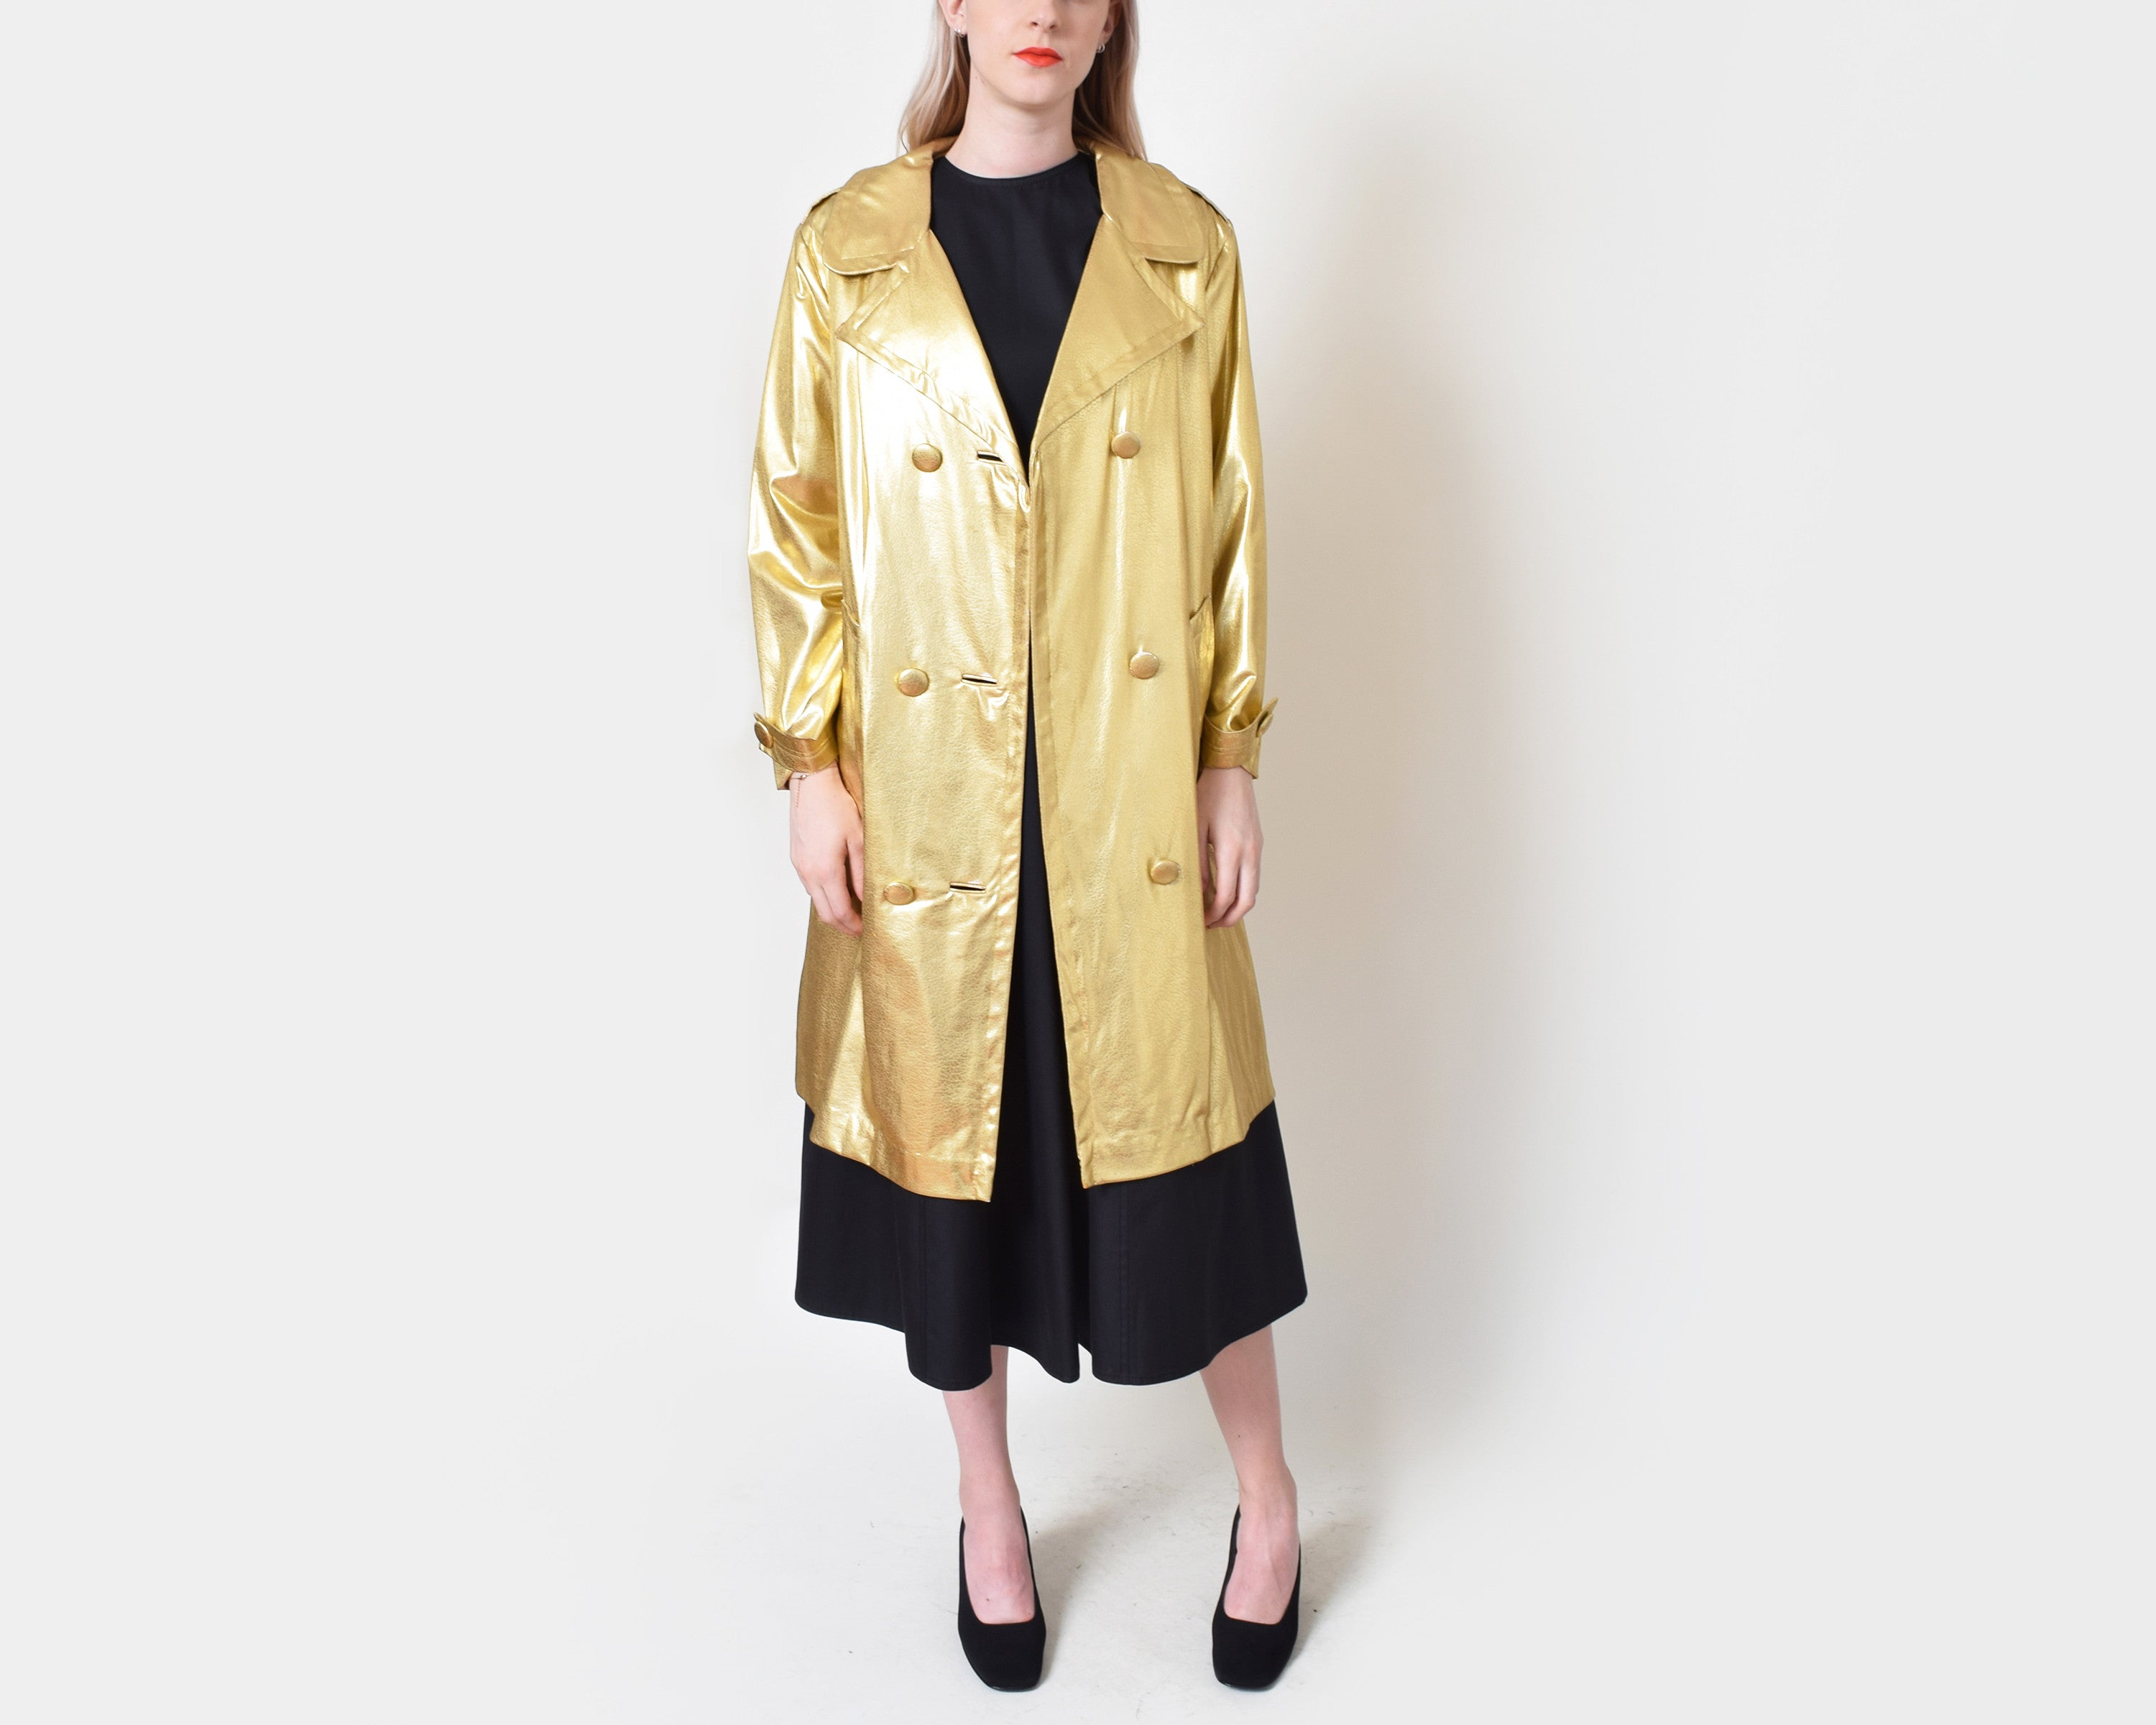 Vintage 1960s Metallic Gold Trench Coat